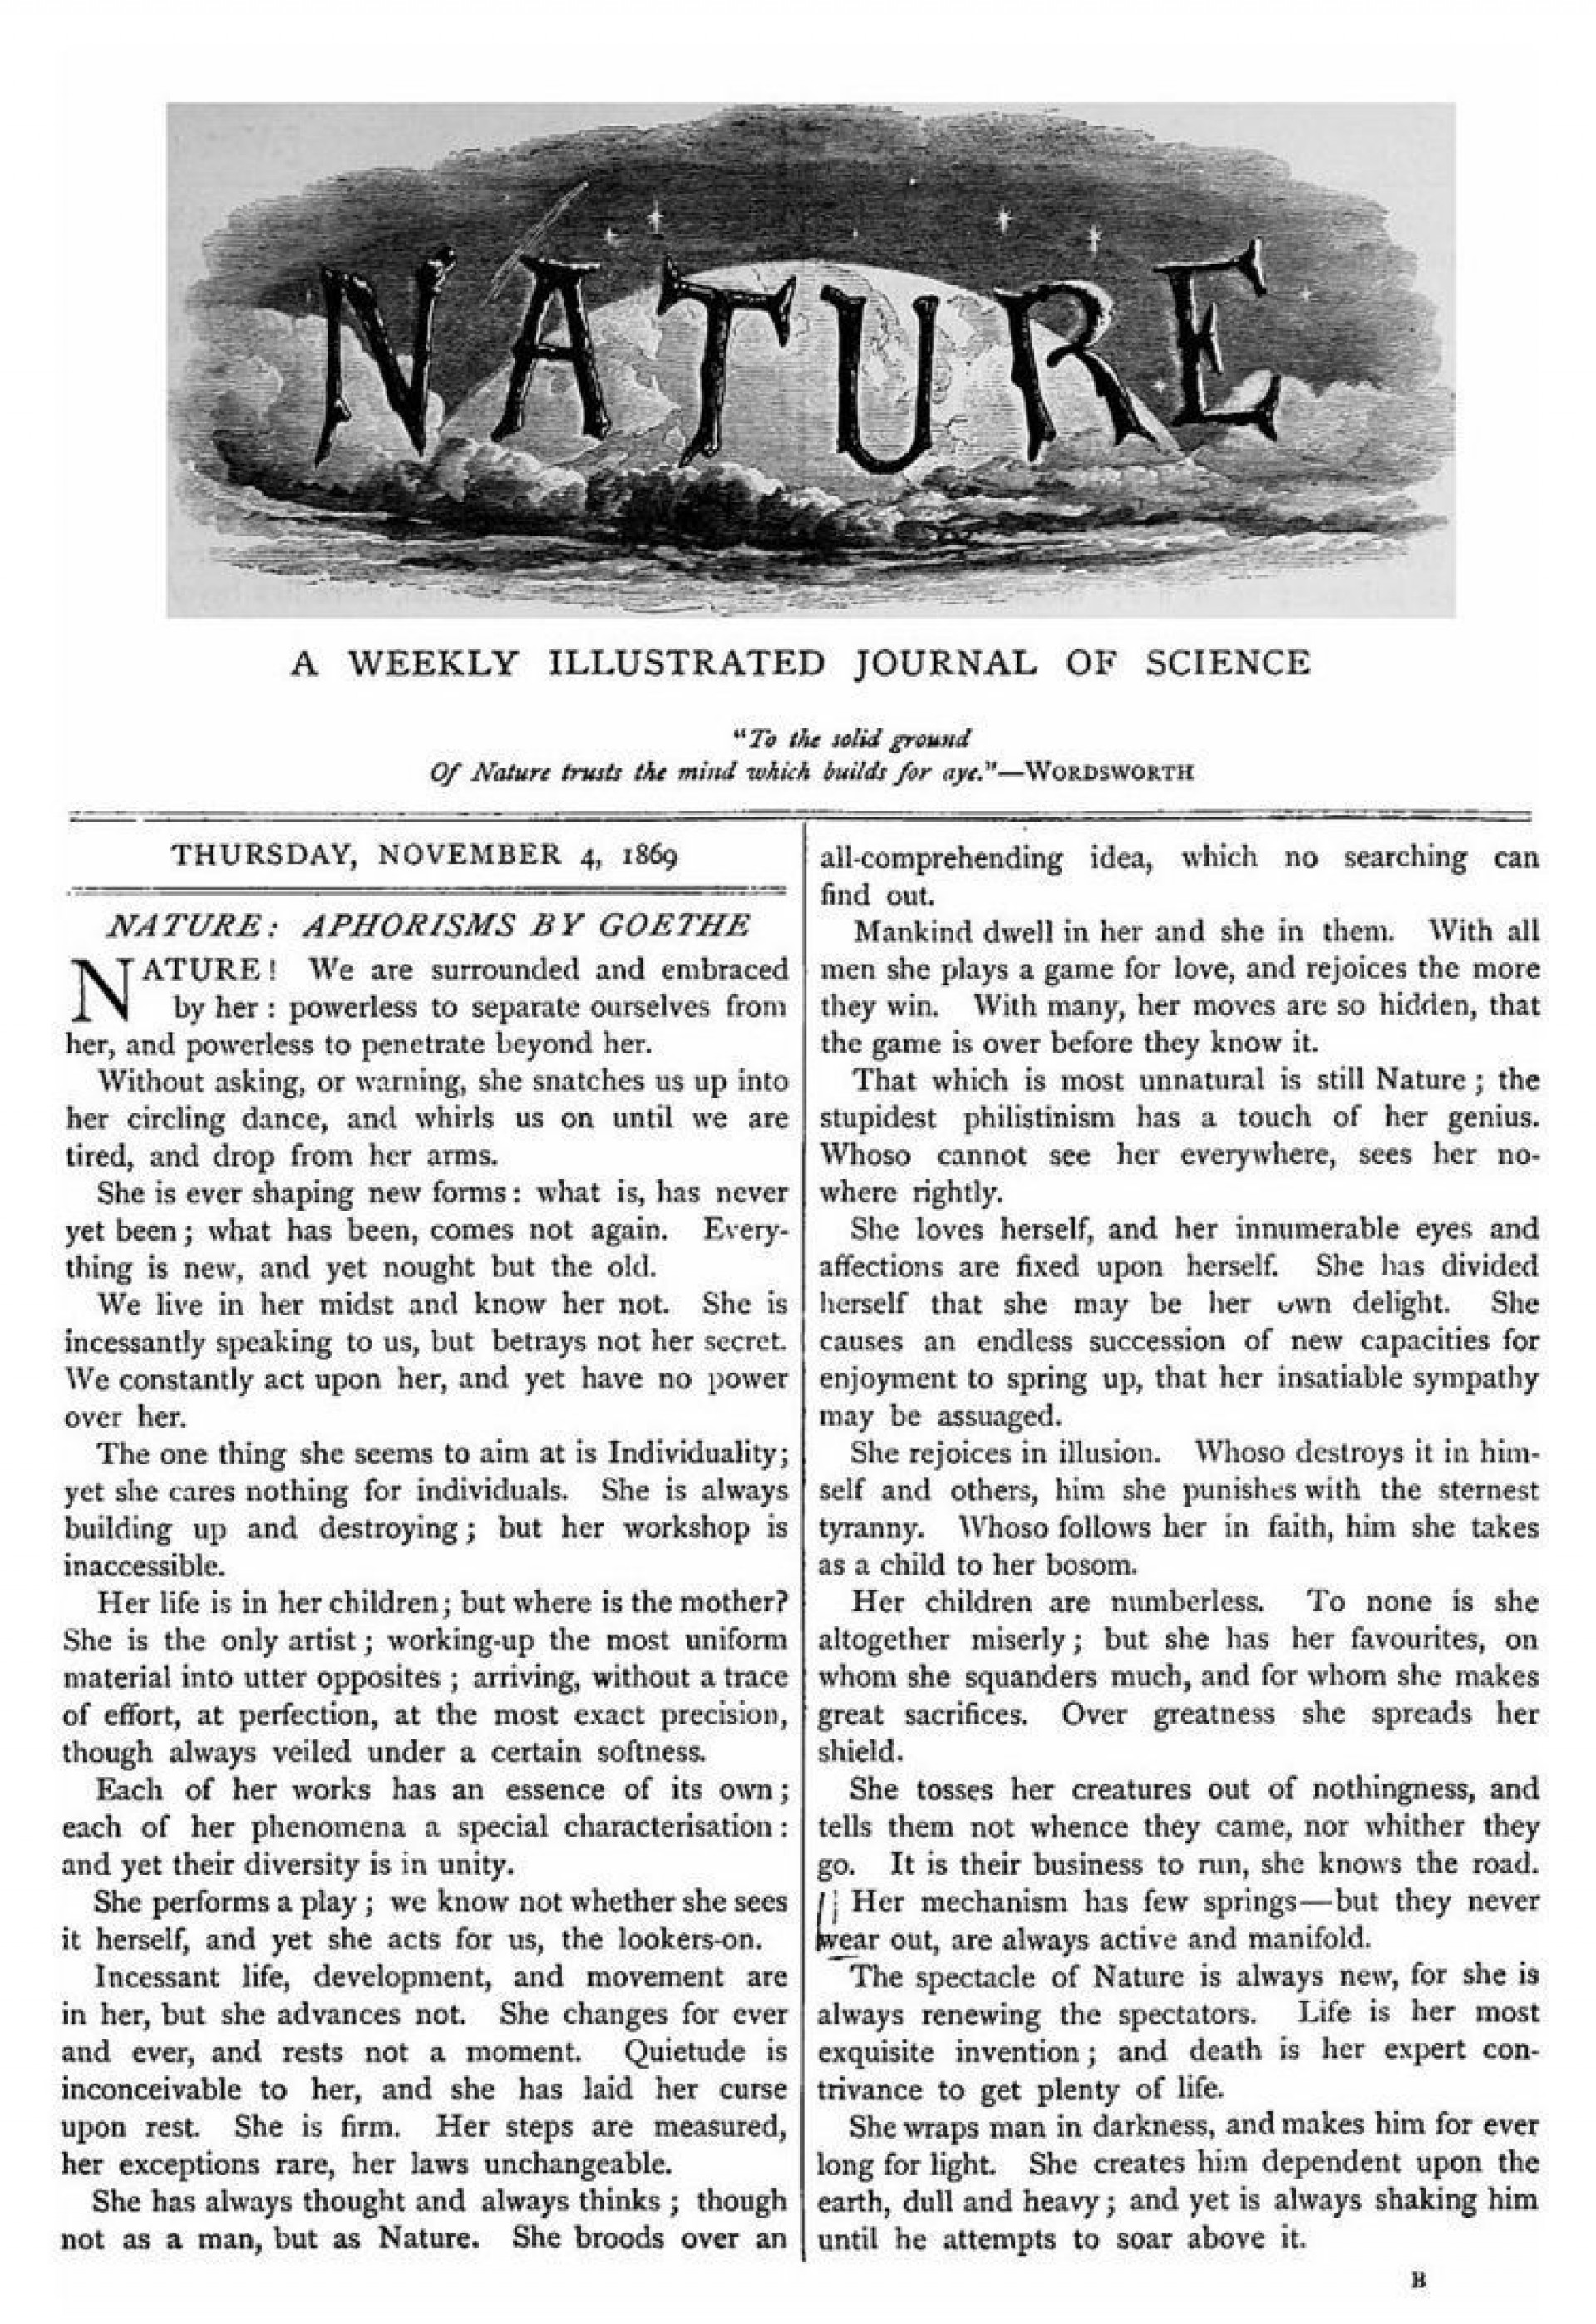 010 Nature Tobler Essay Resize Example Unusual On Persuasive Vs Nurture World Conservation Importance Of In Marathi 1920